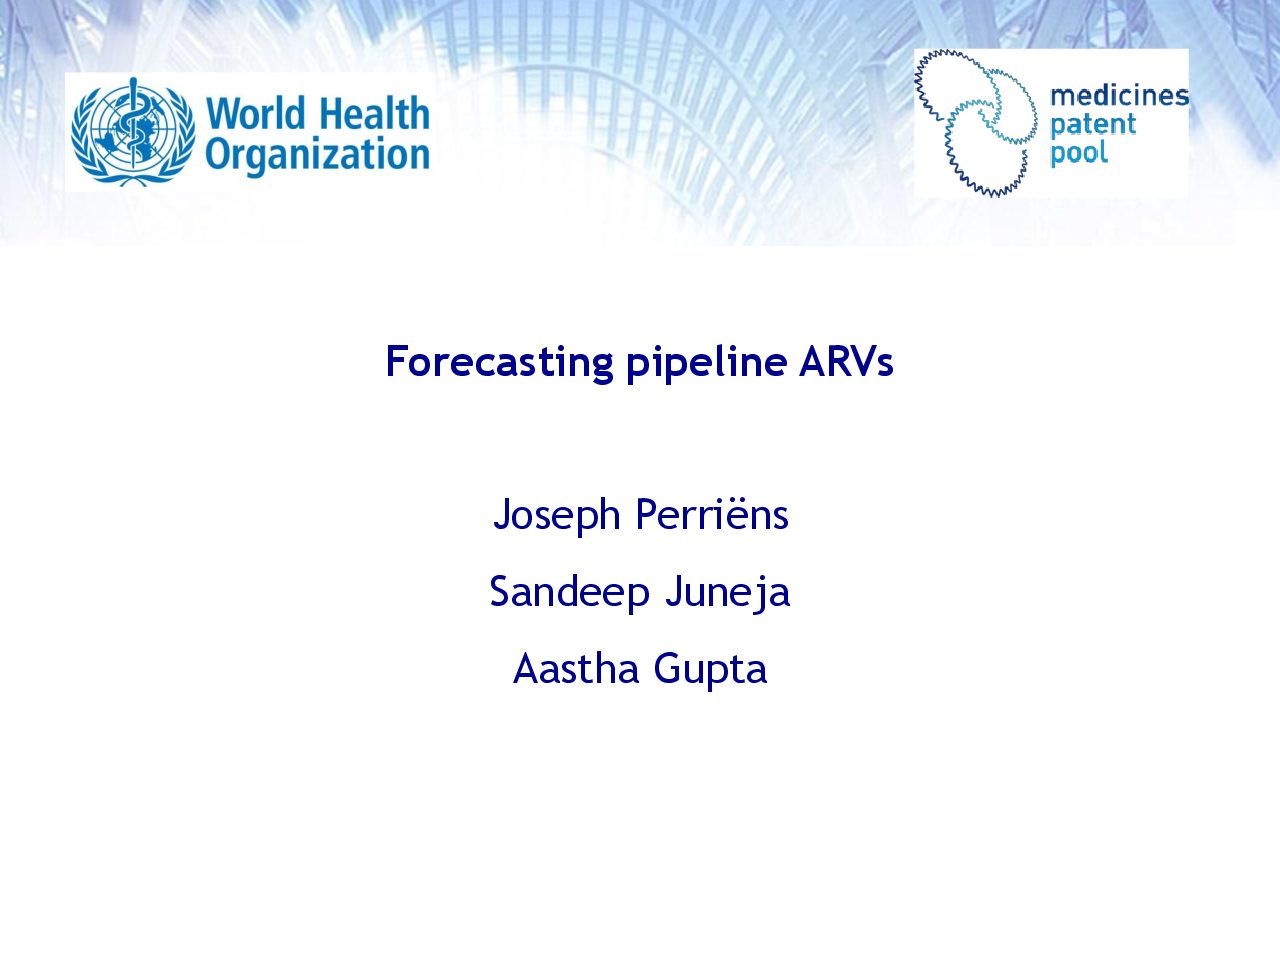 MPP forecasting model adults. Forecasting pipeline ARVs